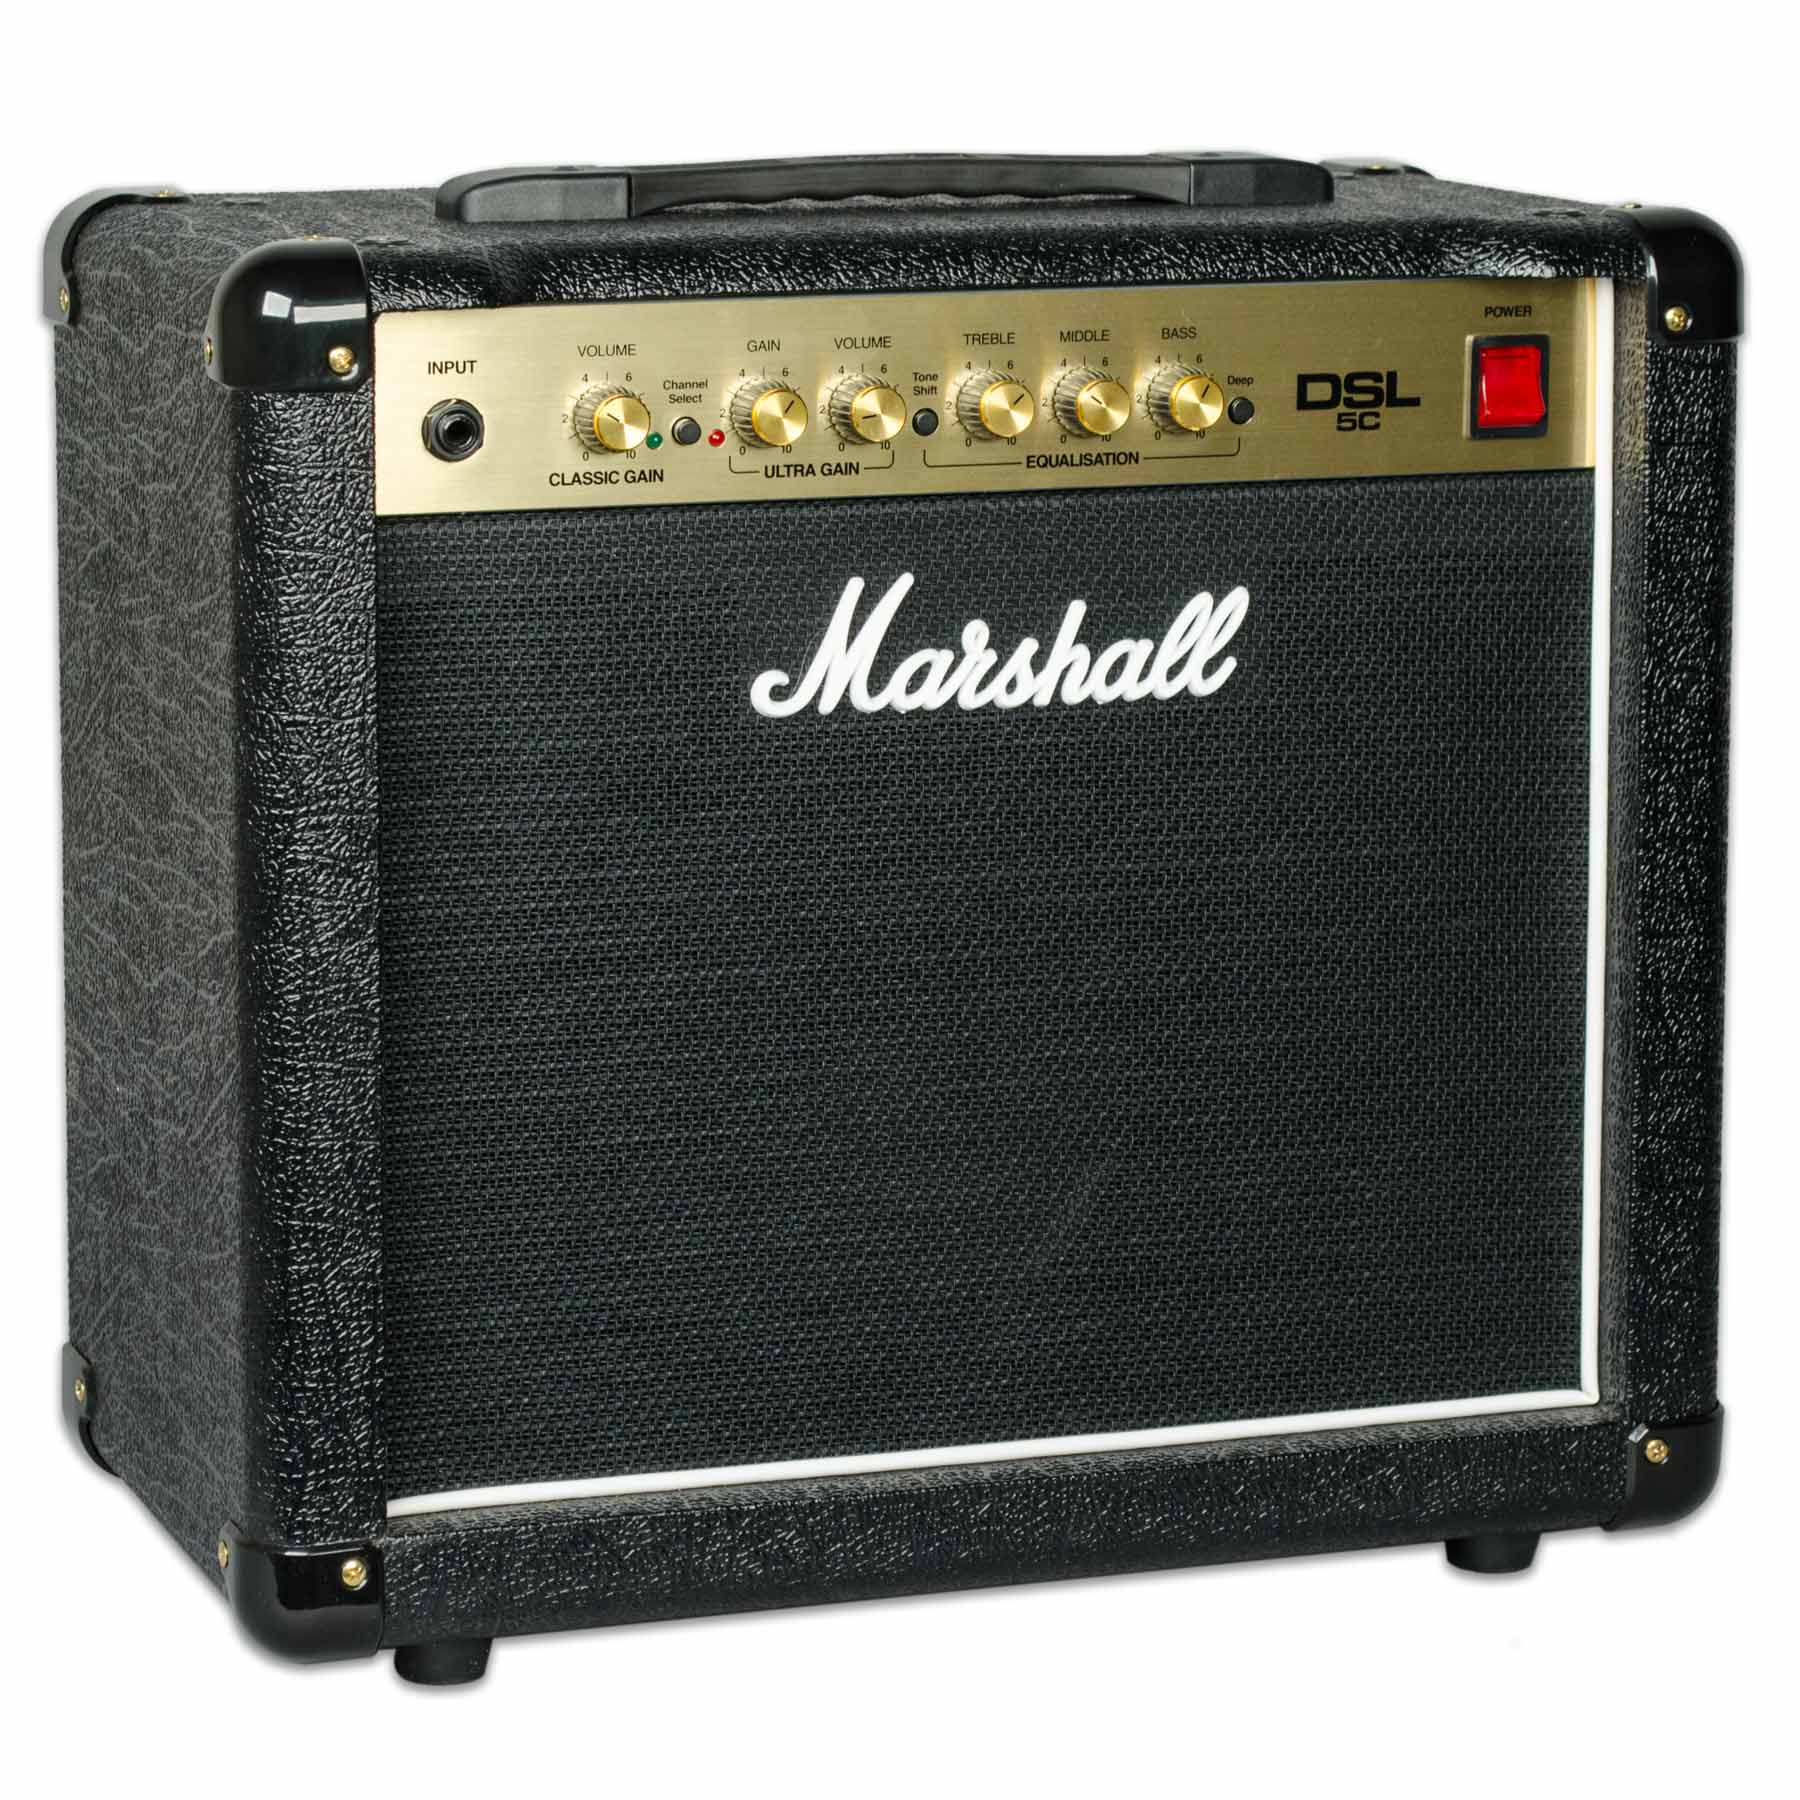 MARSHALL DSL5C GUITAR AMPLIFIER